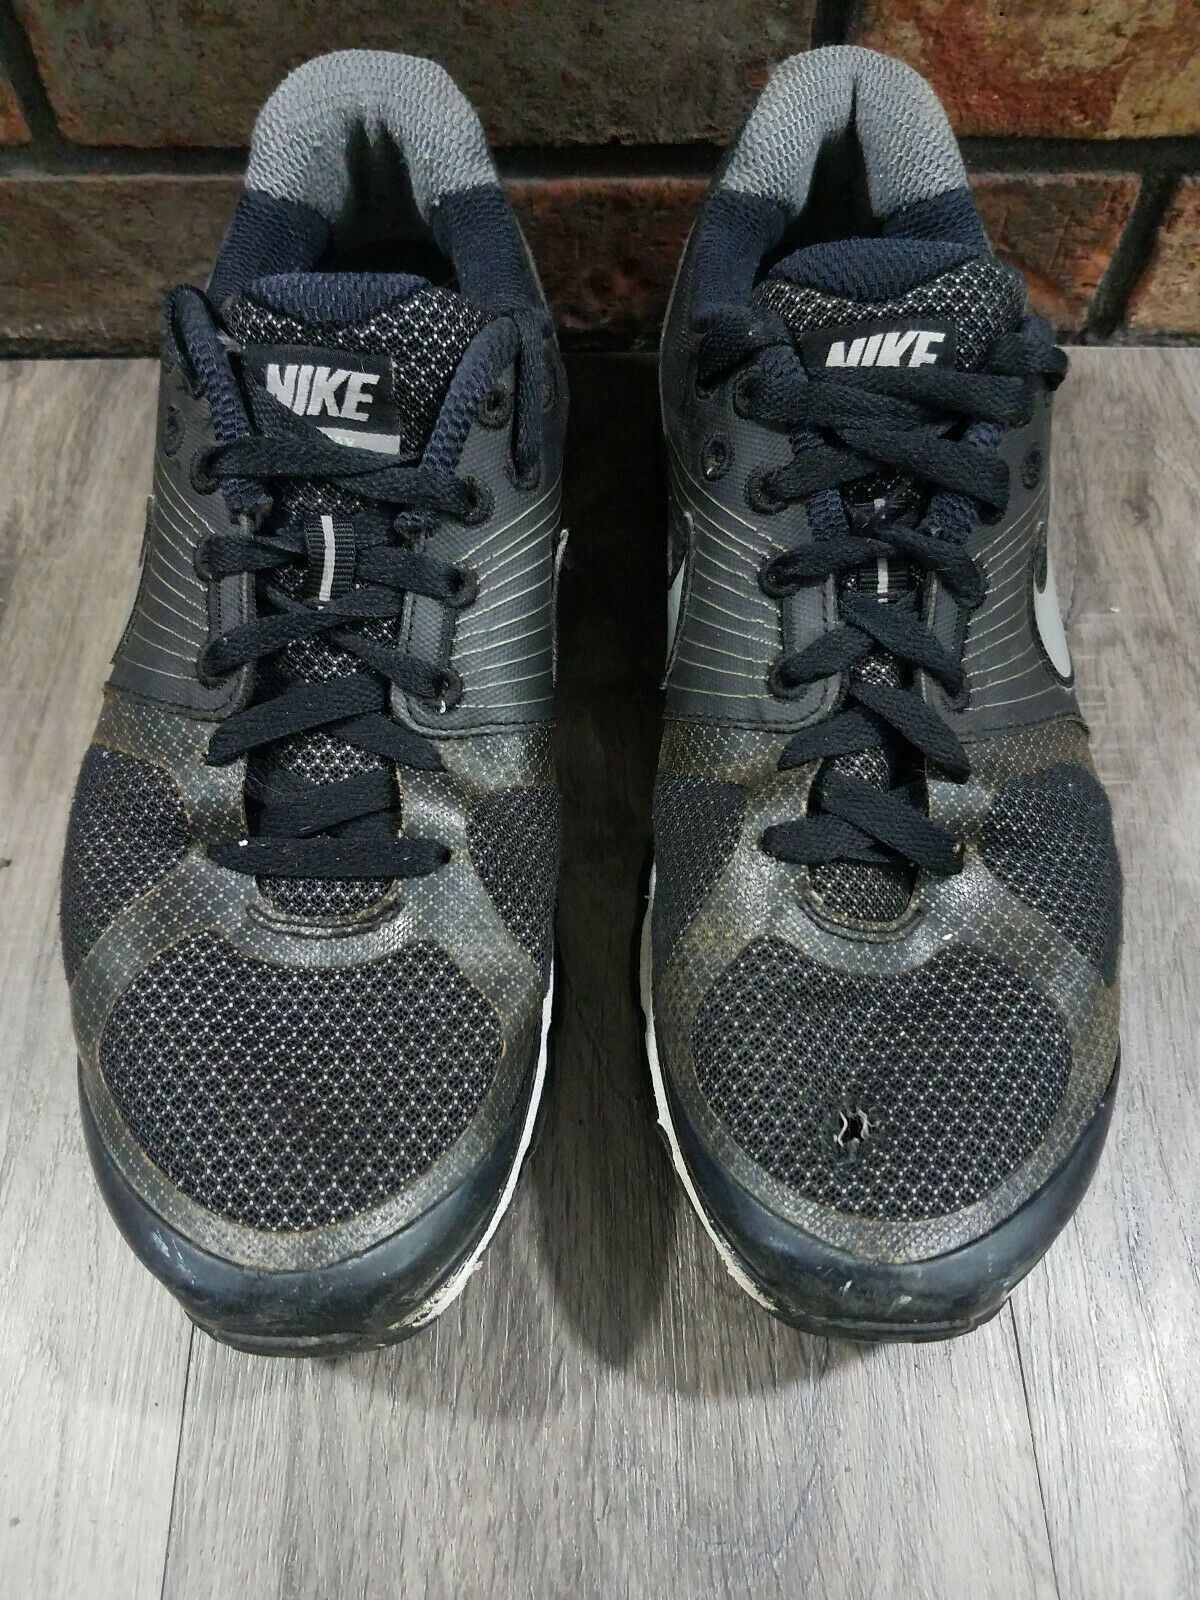 Nike Air Max Plus 2010 Men Athletic Running Gym Swoosh Shoes Size 10.5 Sneakers